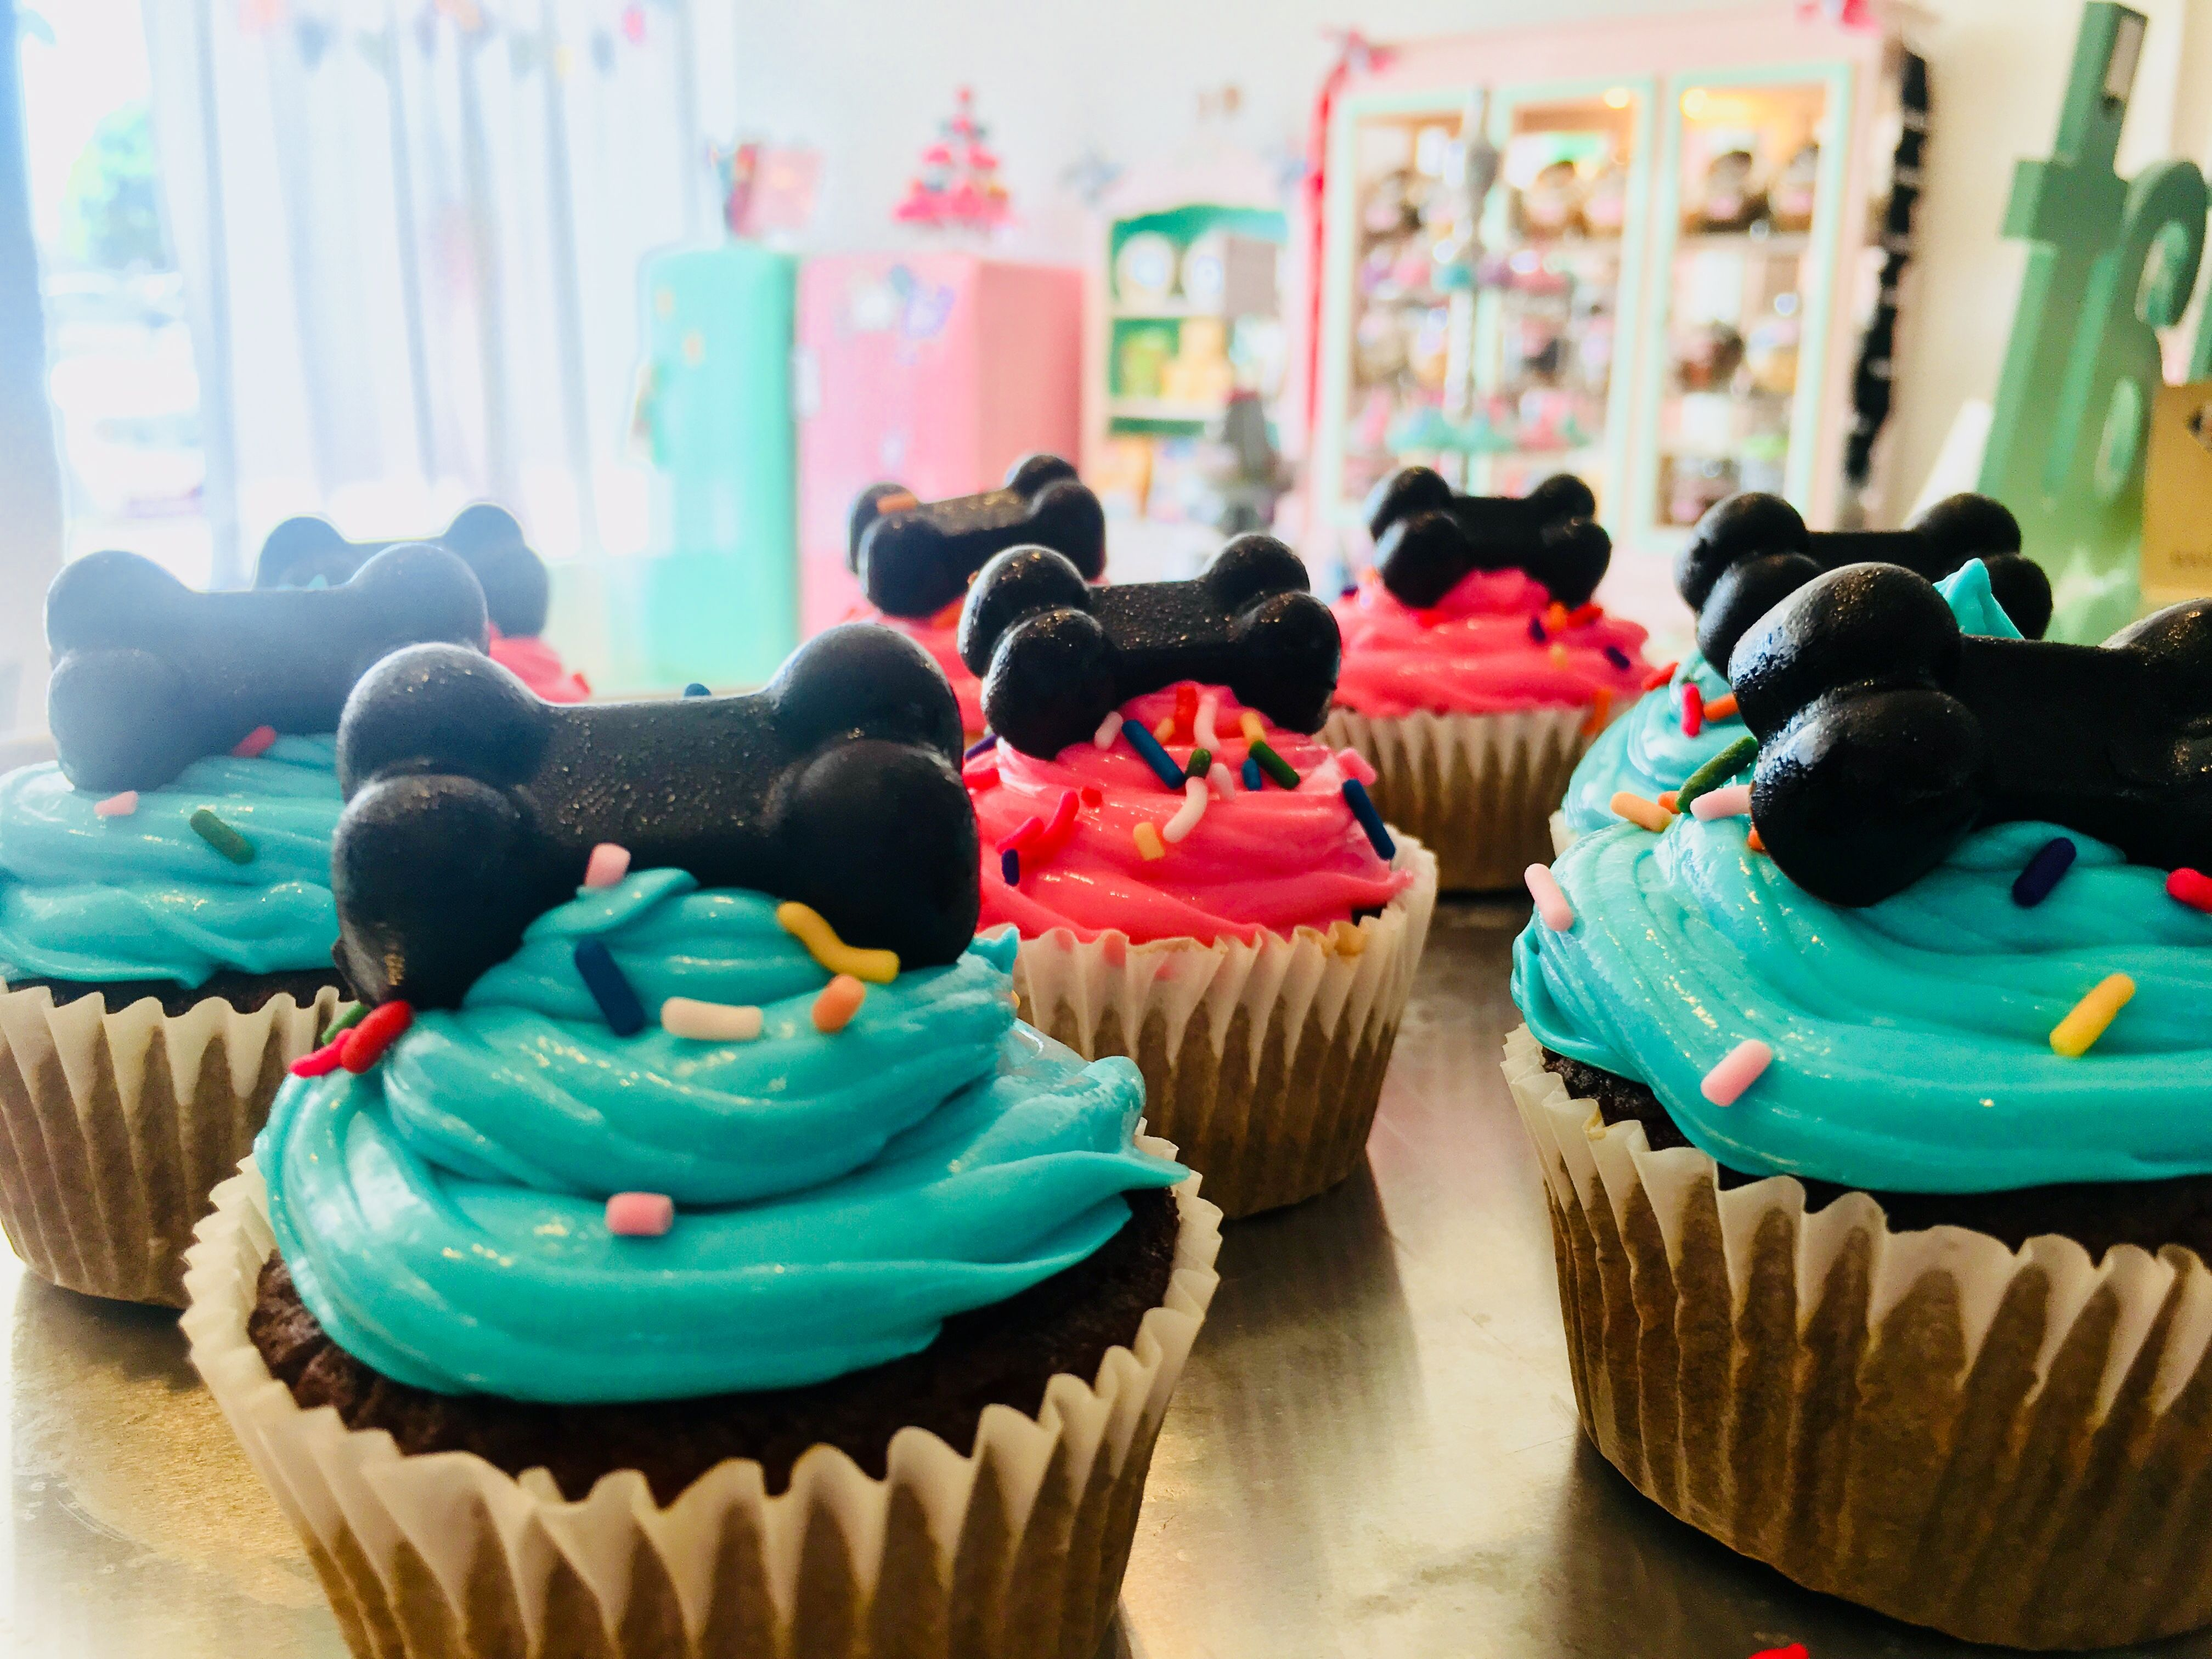 Dog Cupcakes Cakes And Beer Available At Bakery Bow Wow Beauty